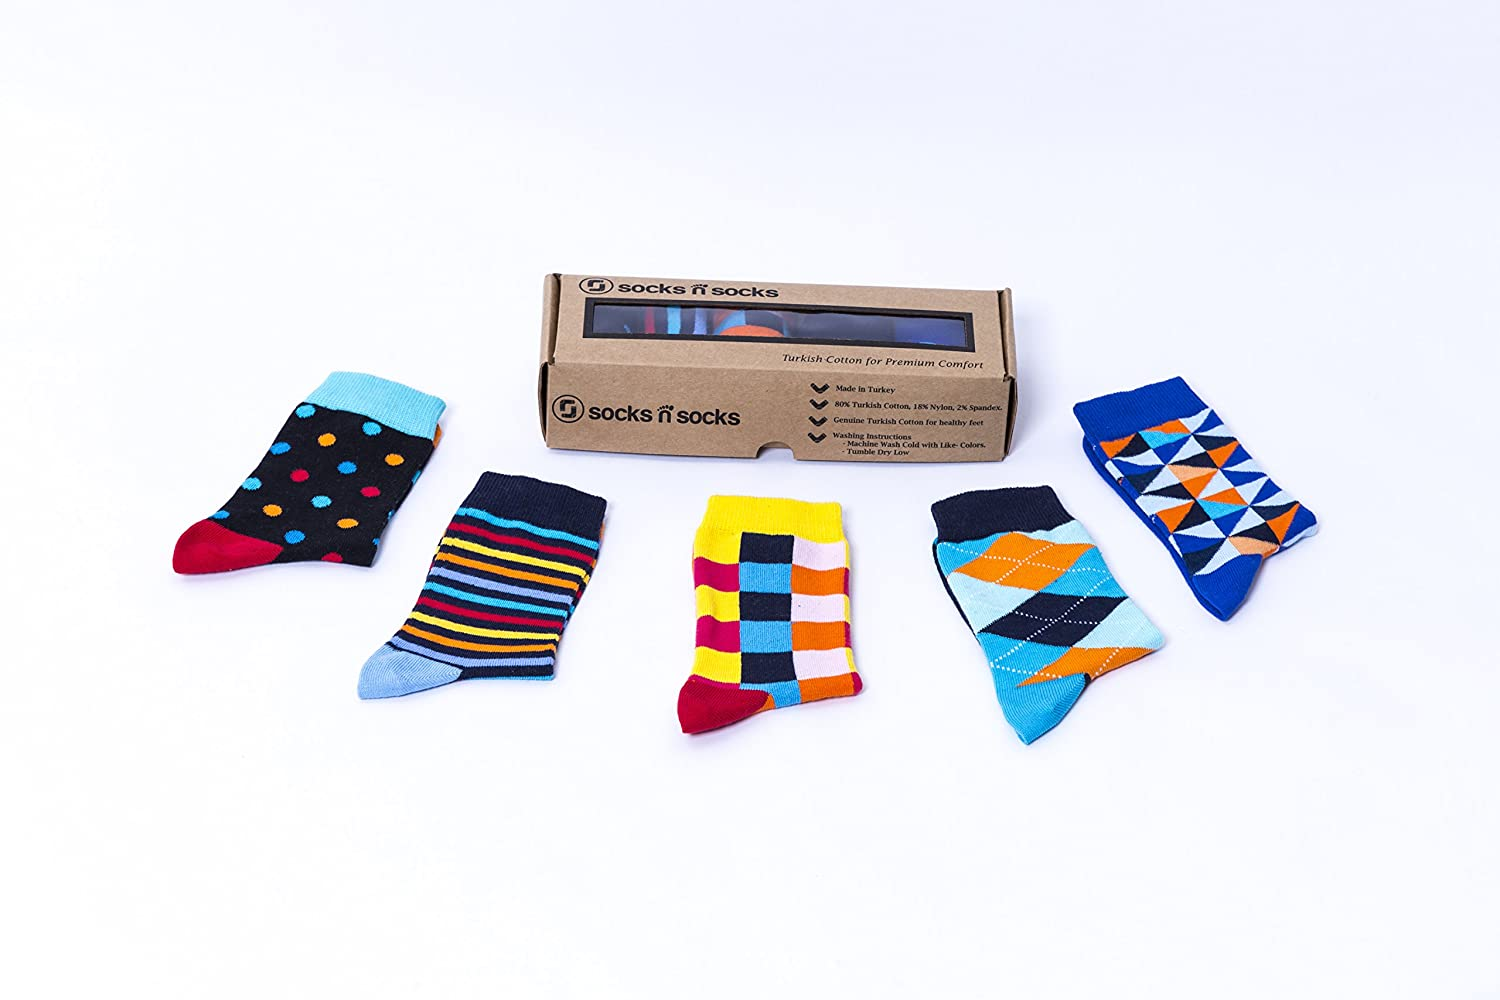 Socks n Socks-Kids 5-pair Fun Cool Cotton Colorful Dress Crew Socks Gift Box